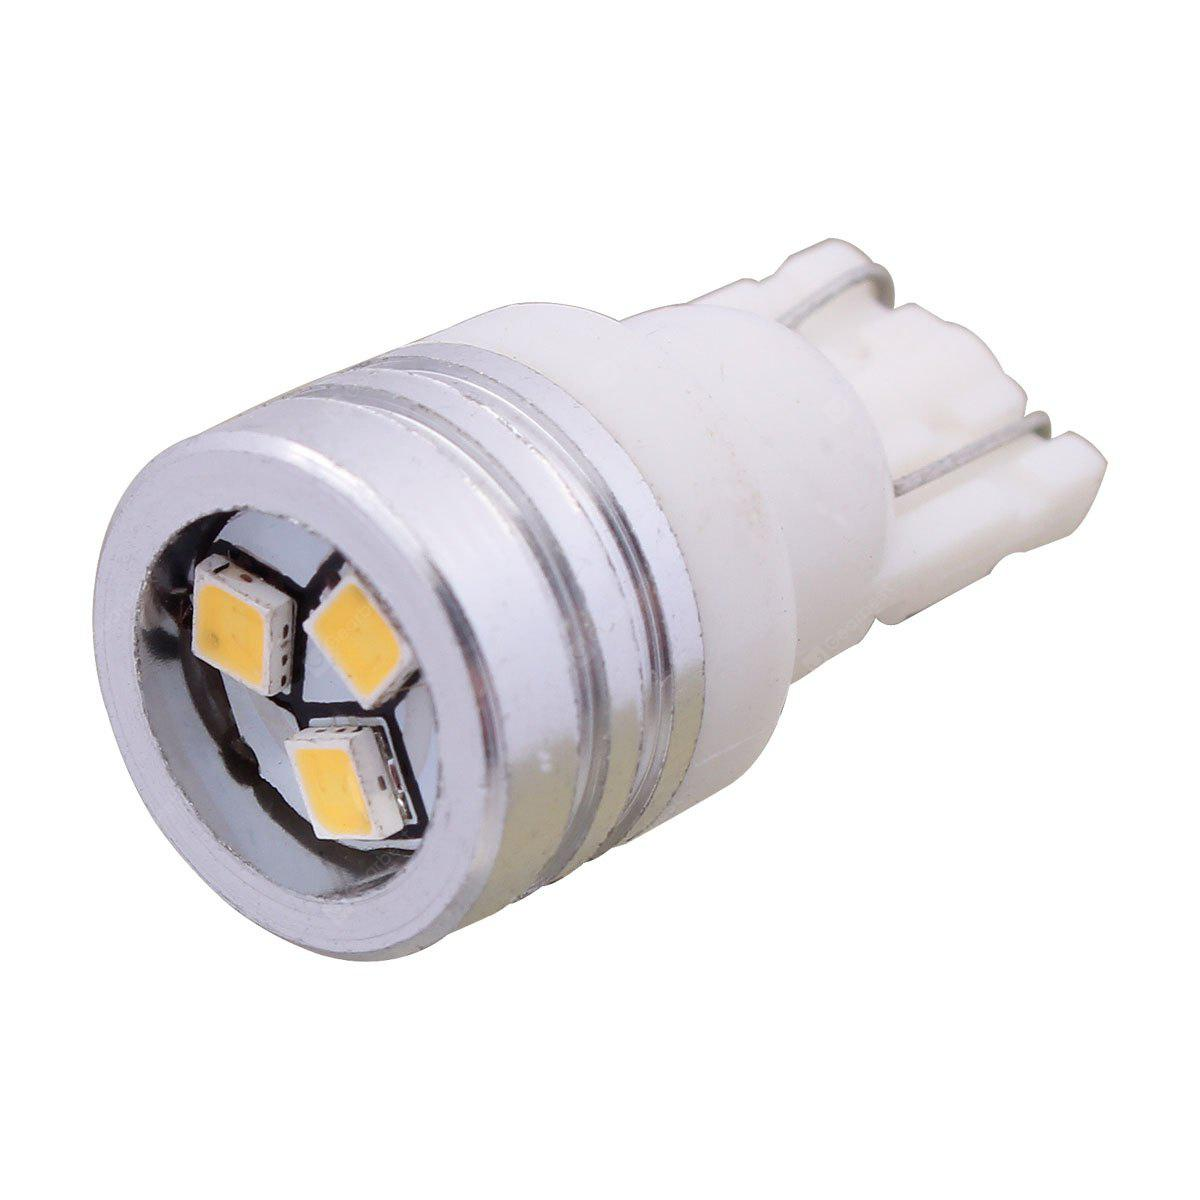 WHITE 2PCS 1Pair 3 SMD LED 12V 1W 6000K 150LM Car Parking Light